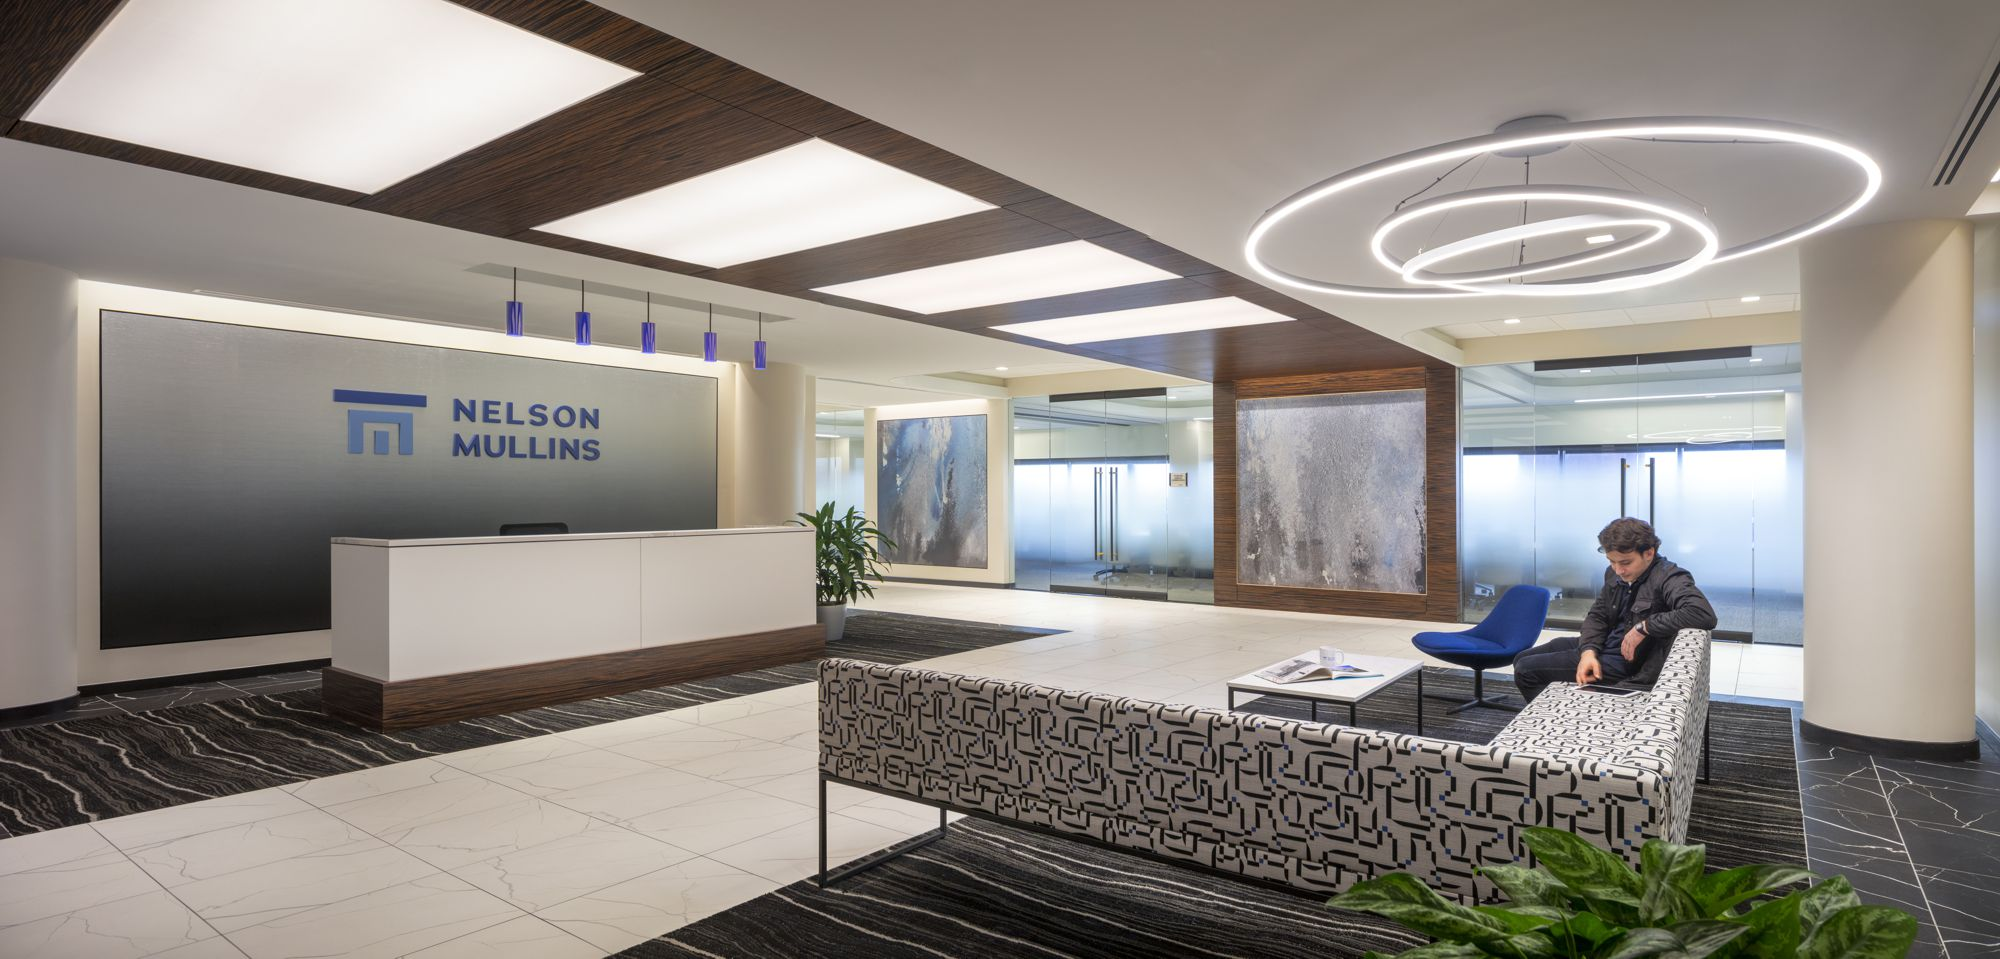 Stepping back to view the reception area, the royal blue accents pop in the lighting and firm logo.